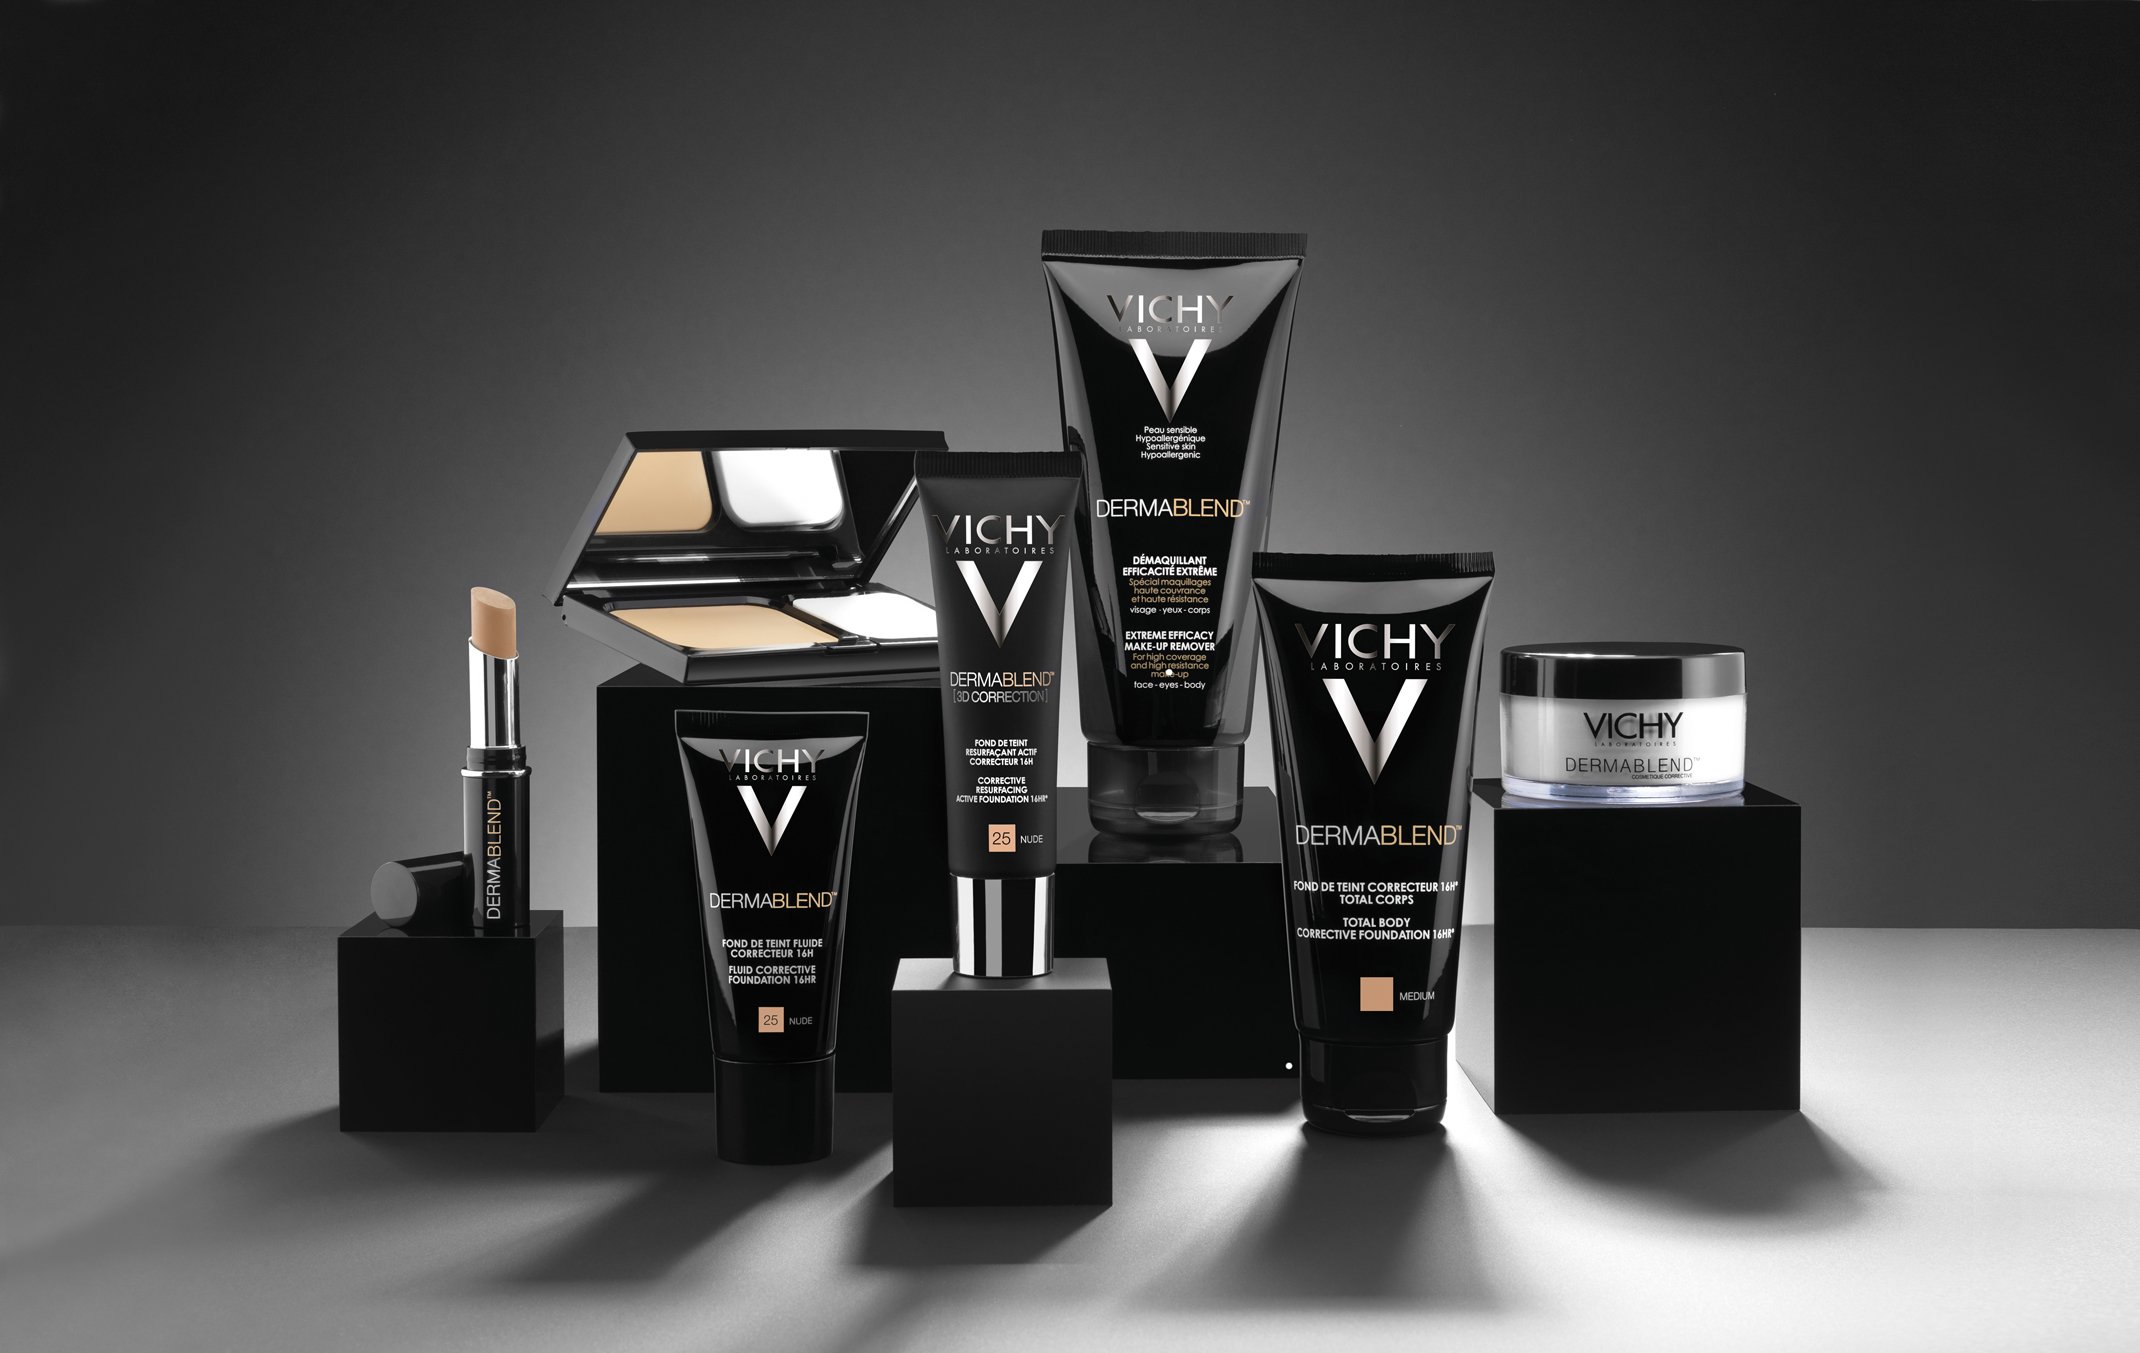 Maquillaje Vichy 5